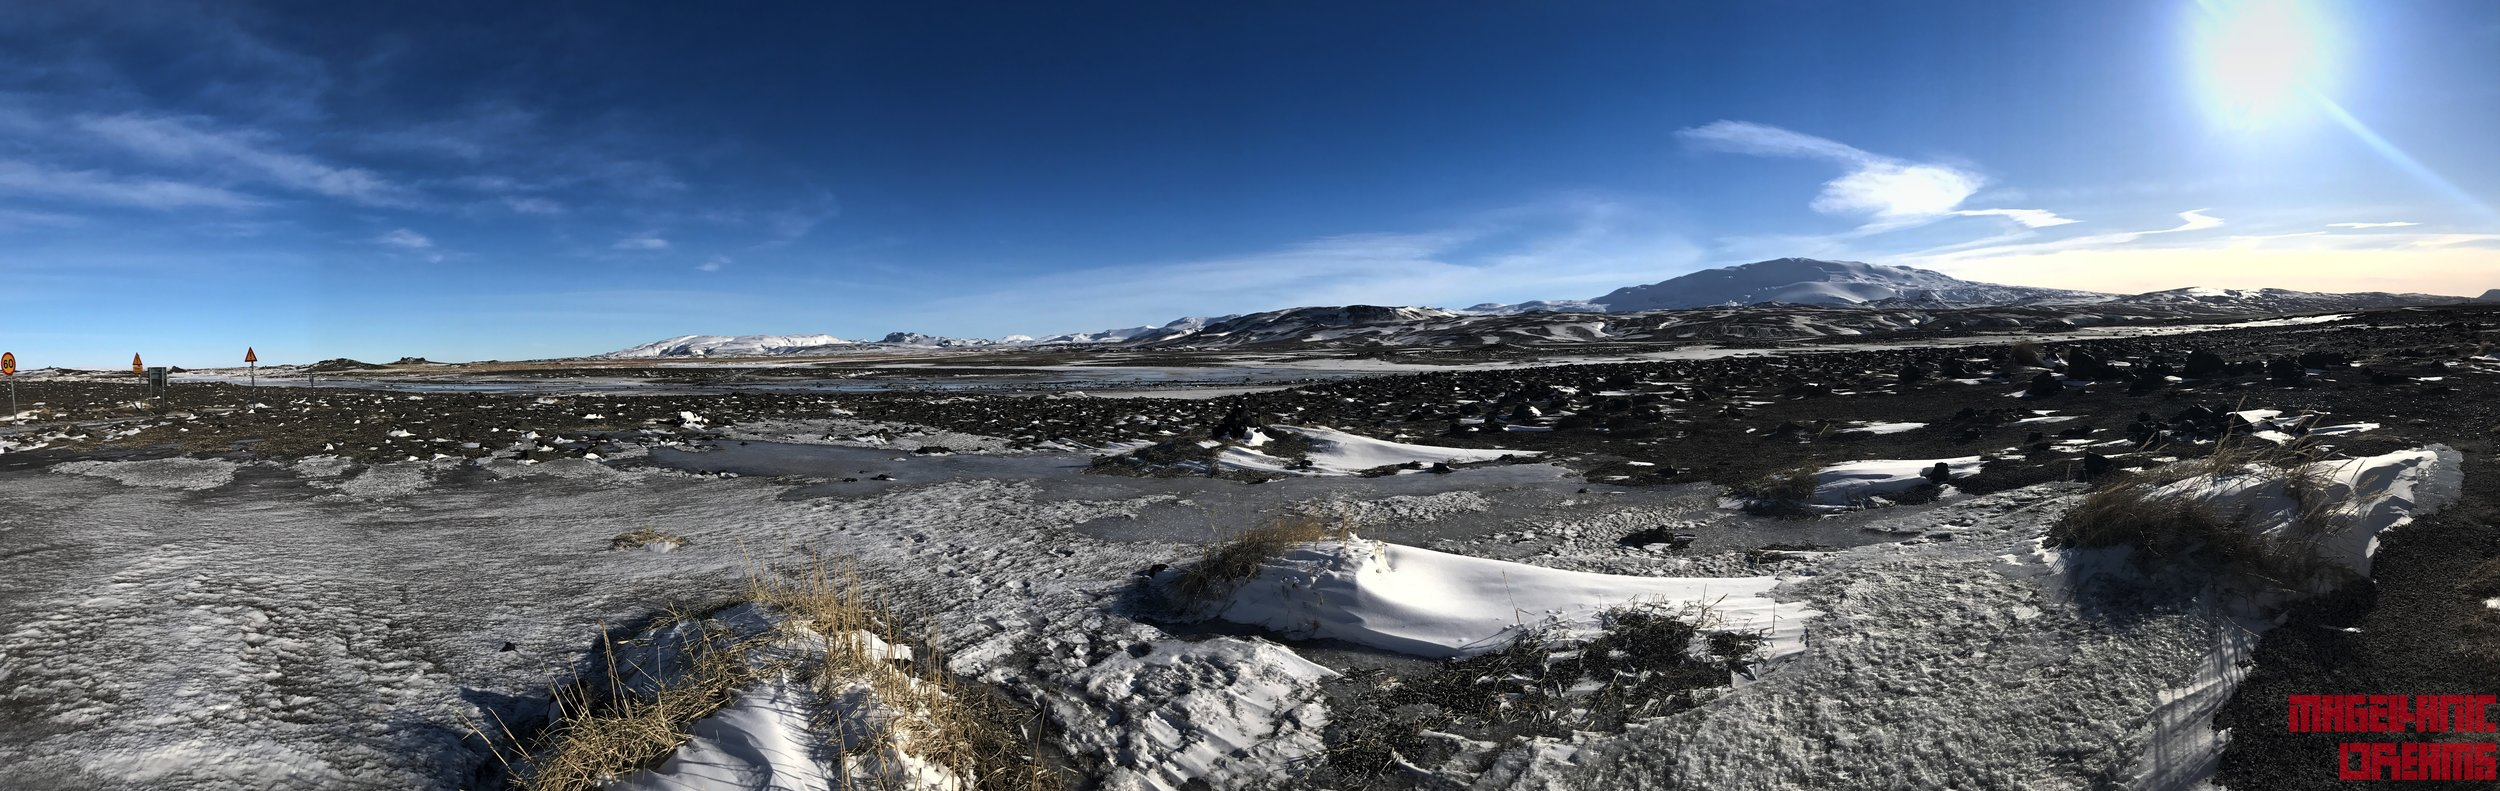 Panorama from Road 25 - You can see Hekla Volcano and beginning of F-225